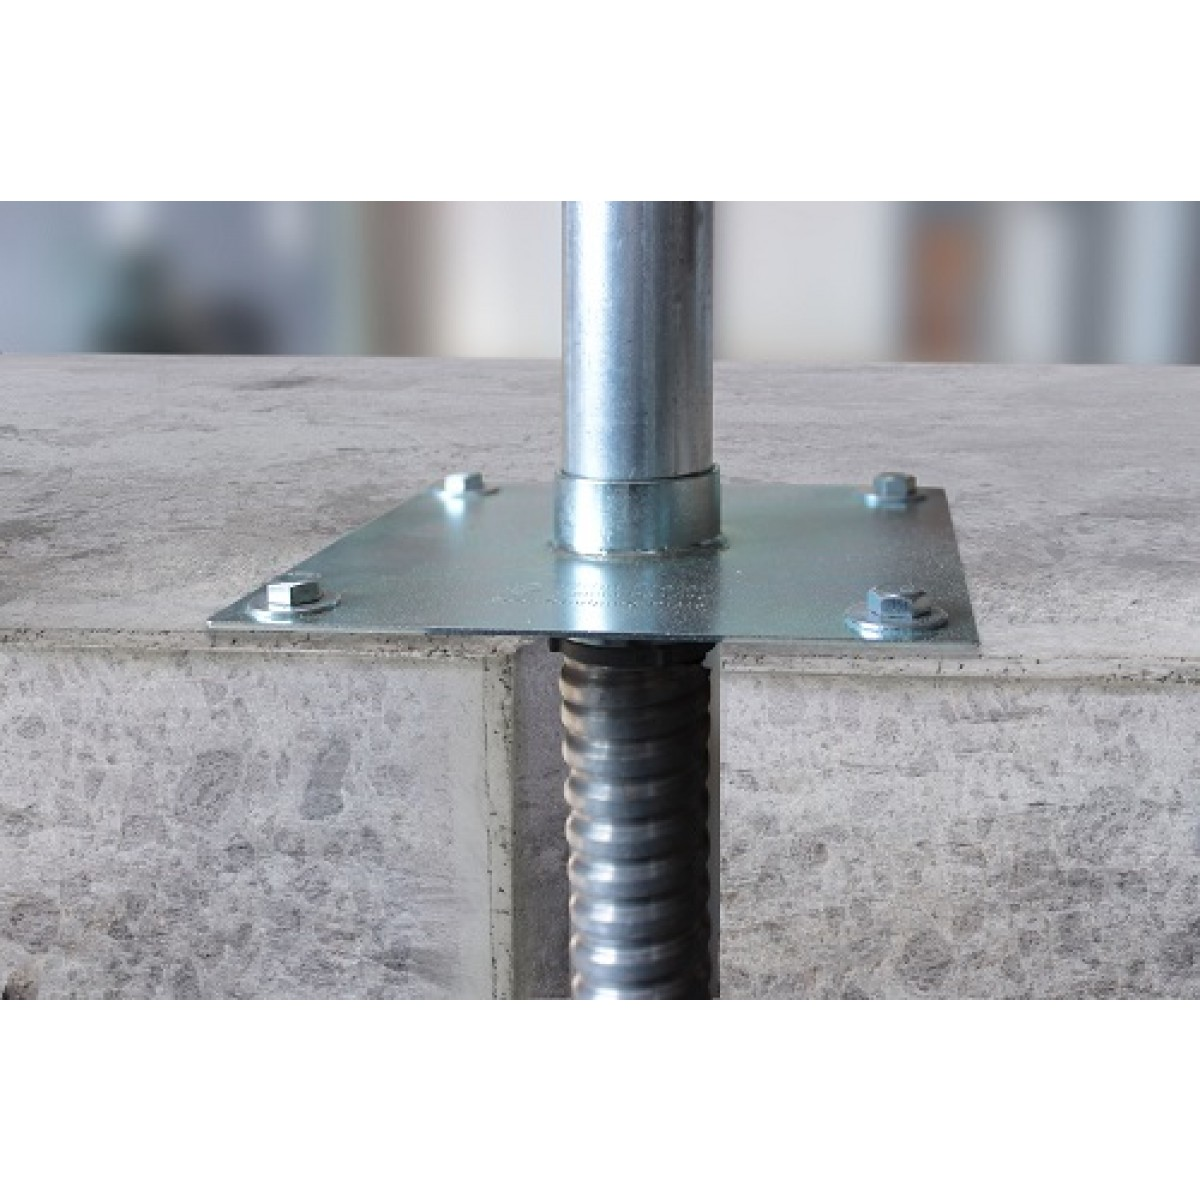 Roof Coupling Plates Conduit Supports Straps Clamps